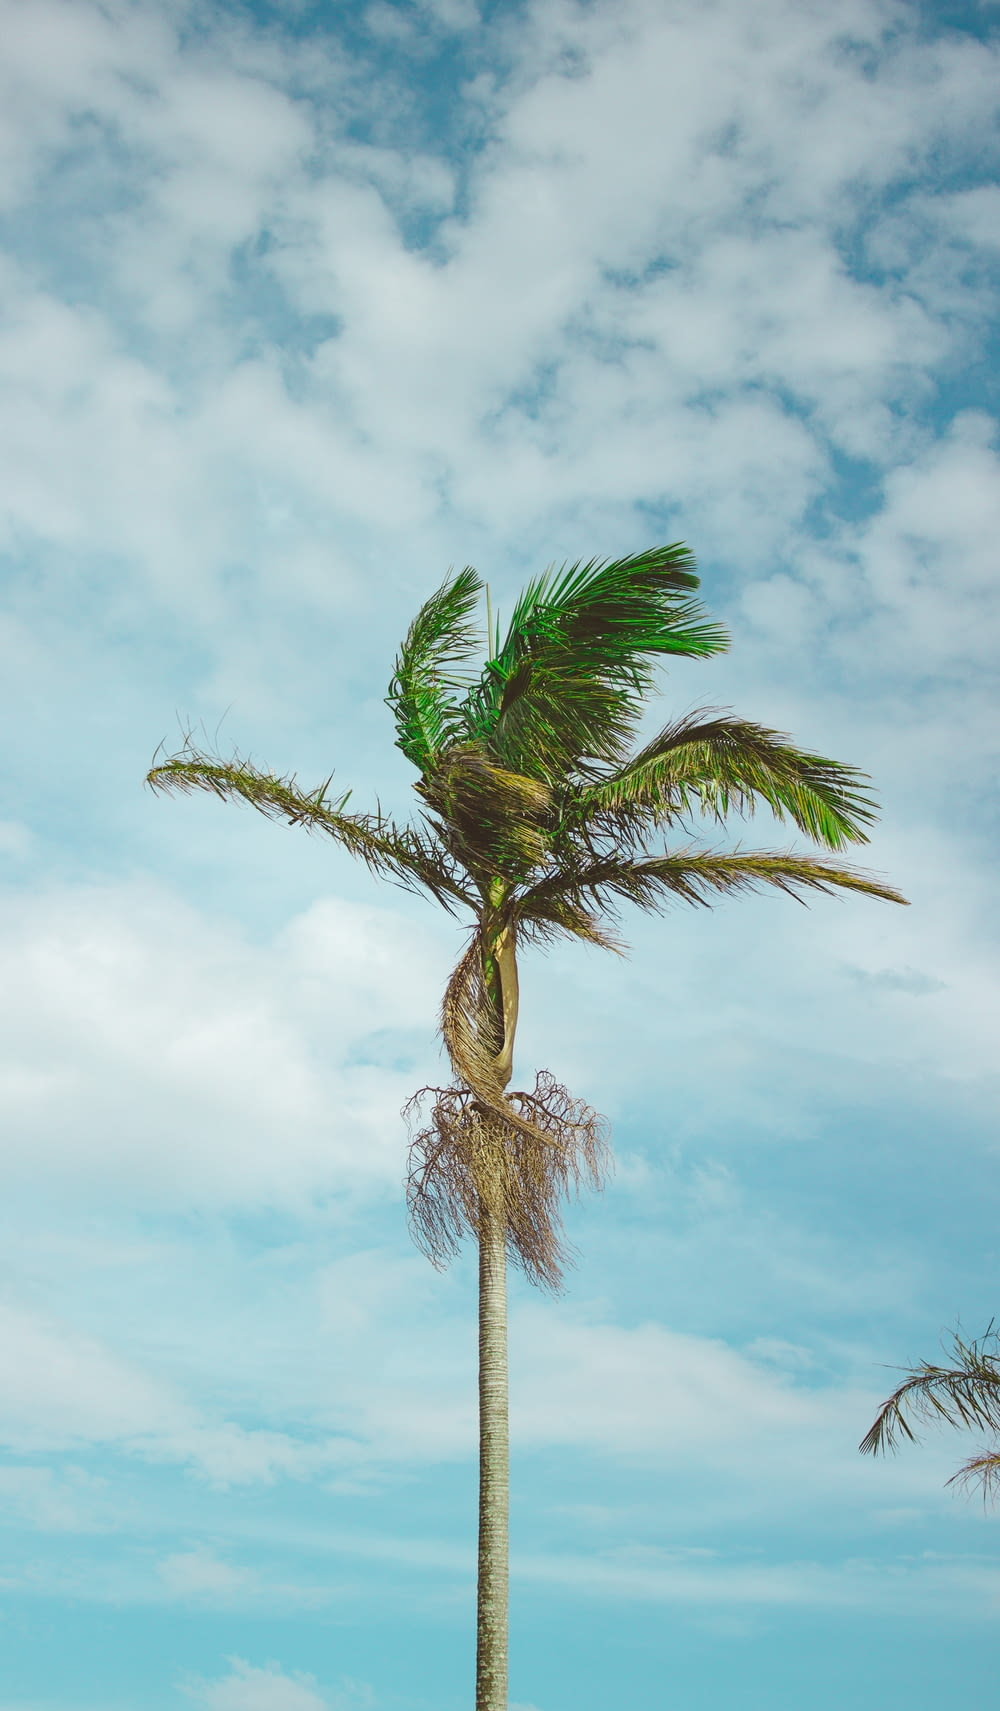 wind blowing on green coconut tree during daytime